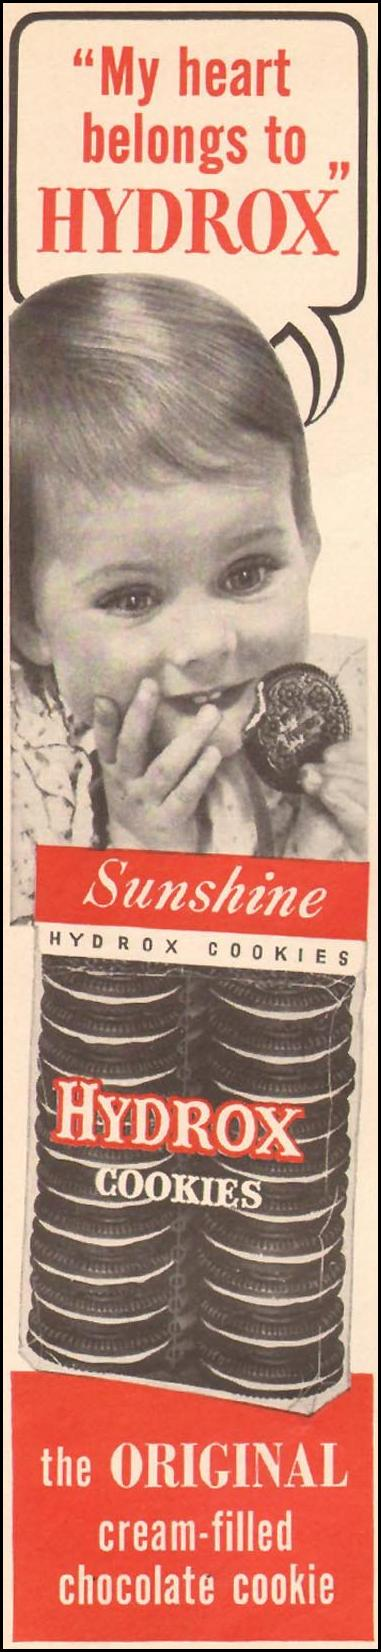 HYDROX COOKIES WOMAN'S DAY 09/01/1955 p. 72